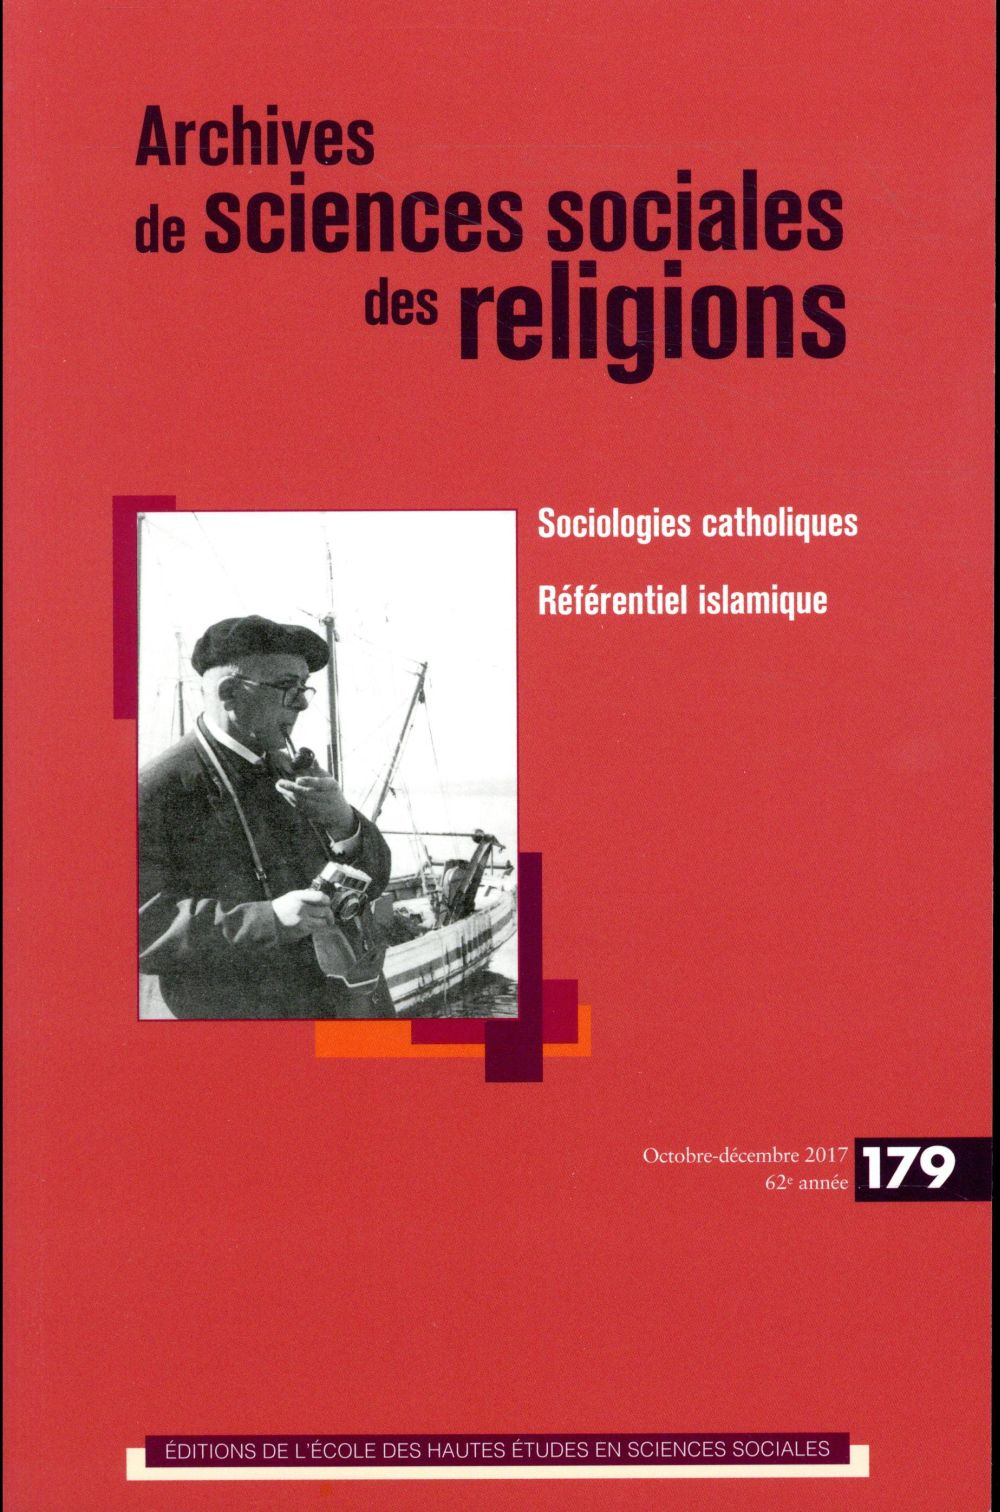 ARCHIVES DE SCIENCES SOCIALES DES RELIGIONS 179